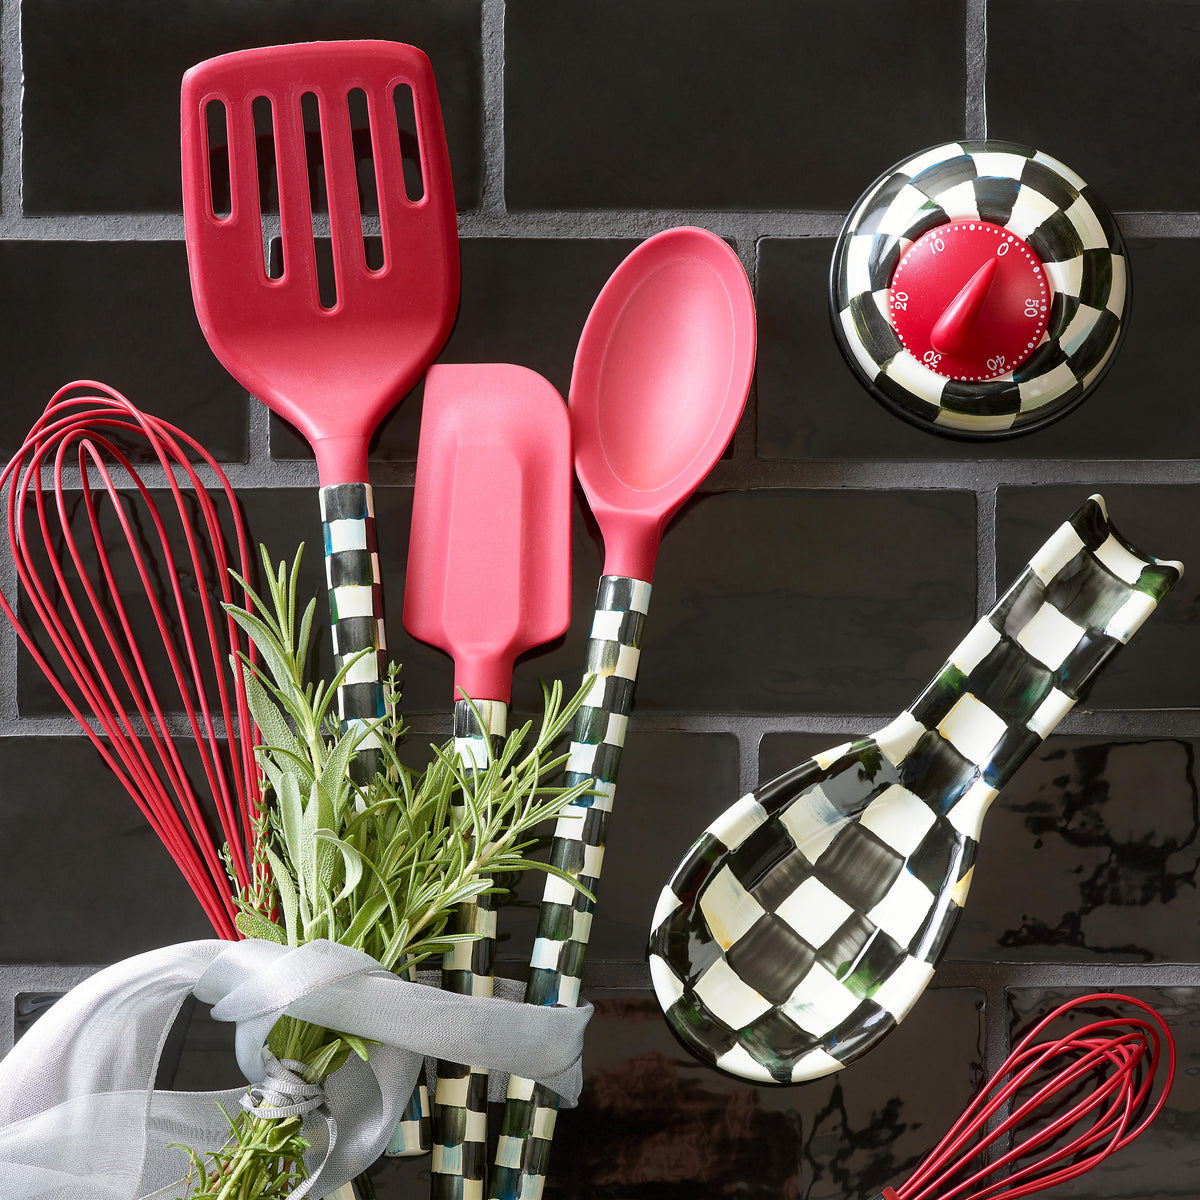 Courtly Check Spoon - Red